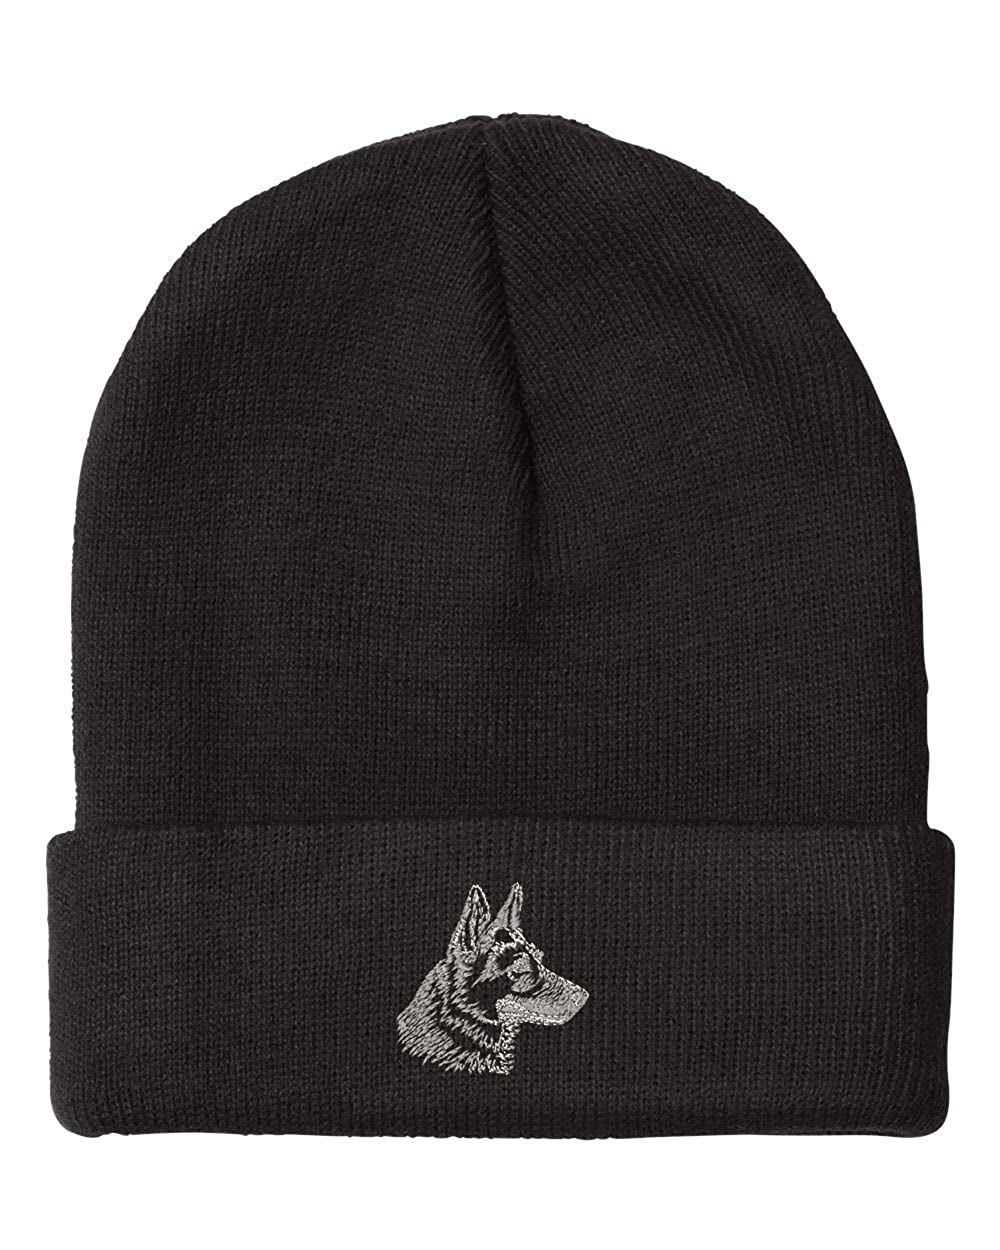 7215c5fd86c Amazon.com  German Shepherd Head Silver Embroidery Embroidered Beanie  Skully Hat Cap Black  Clothing